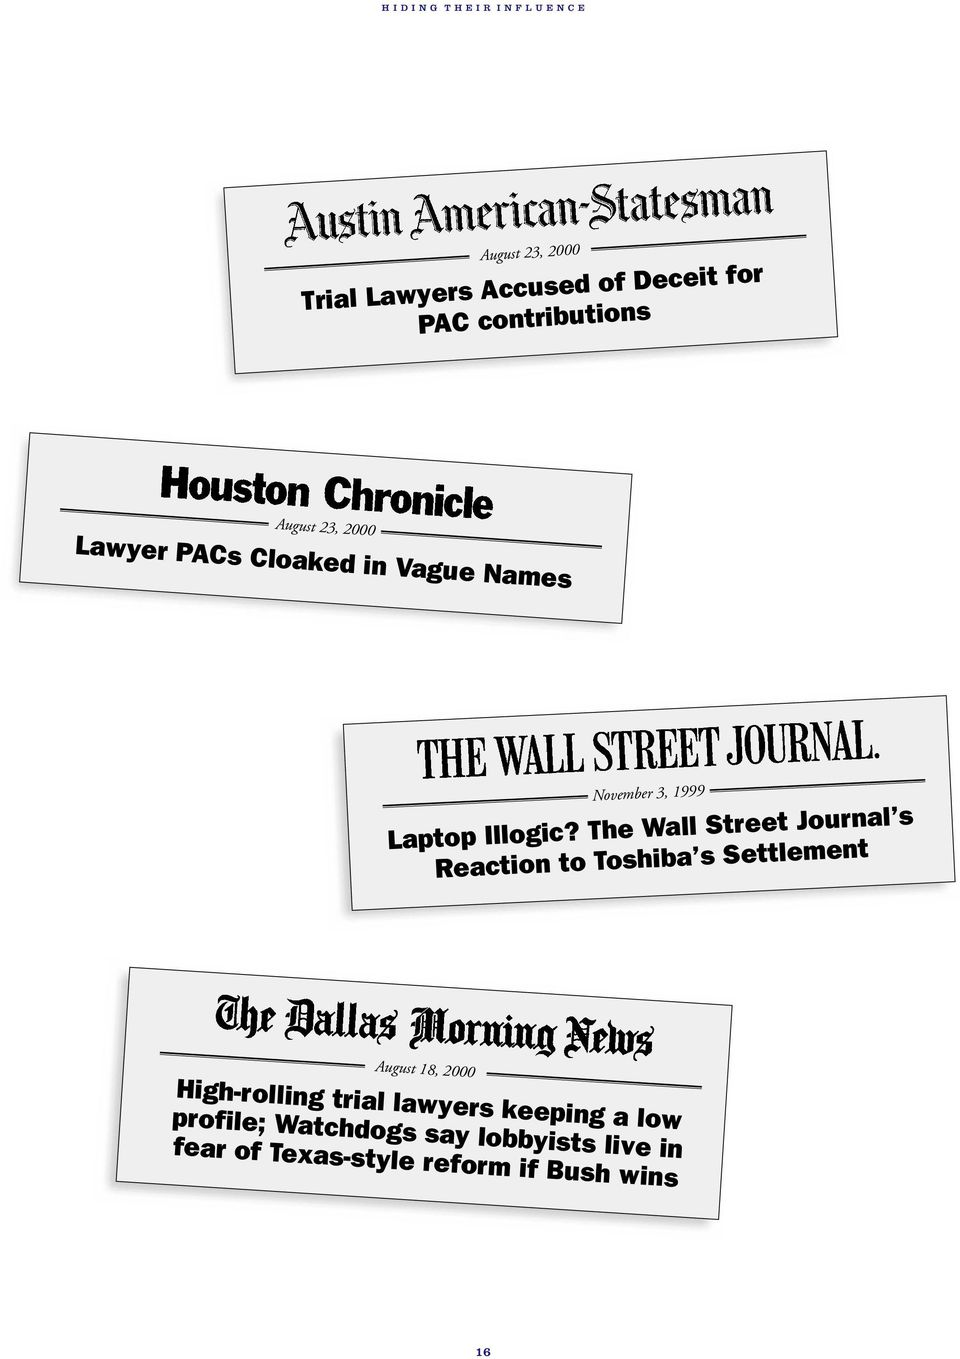 The Wall Street Journal s Reaction to Toshiba s Settlement August 18, 2000 High-rolling trial